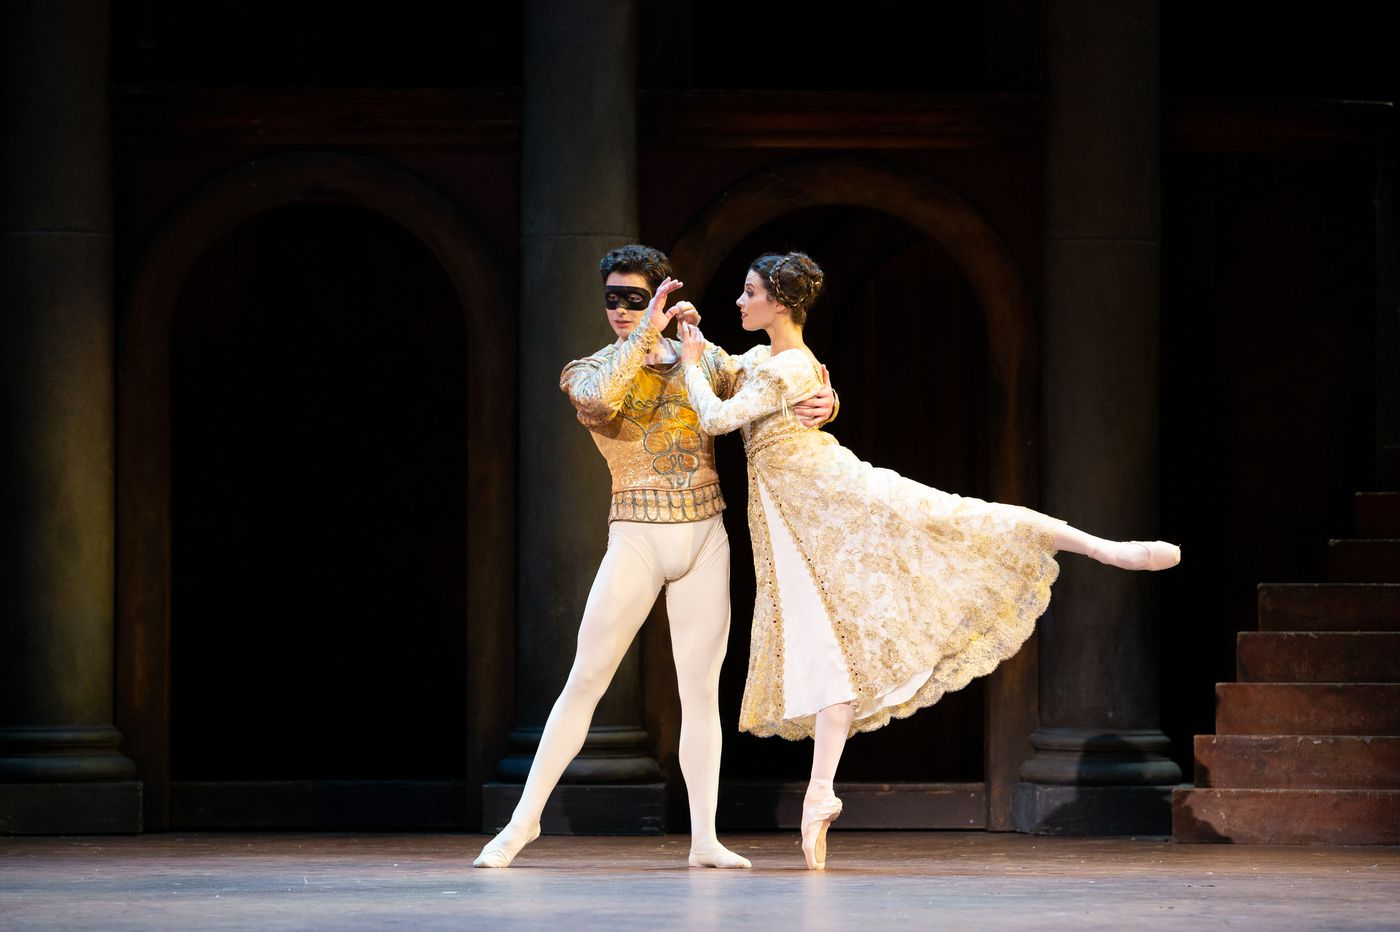 Pennsylvania Ballet in a new (to us) Romeo & Juliet